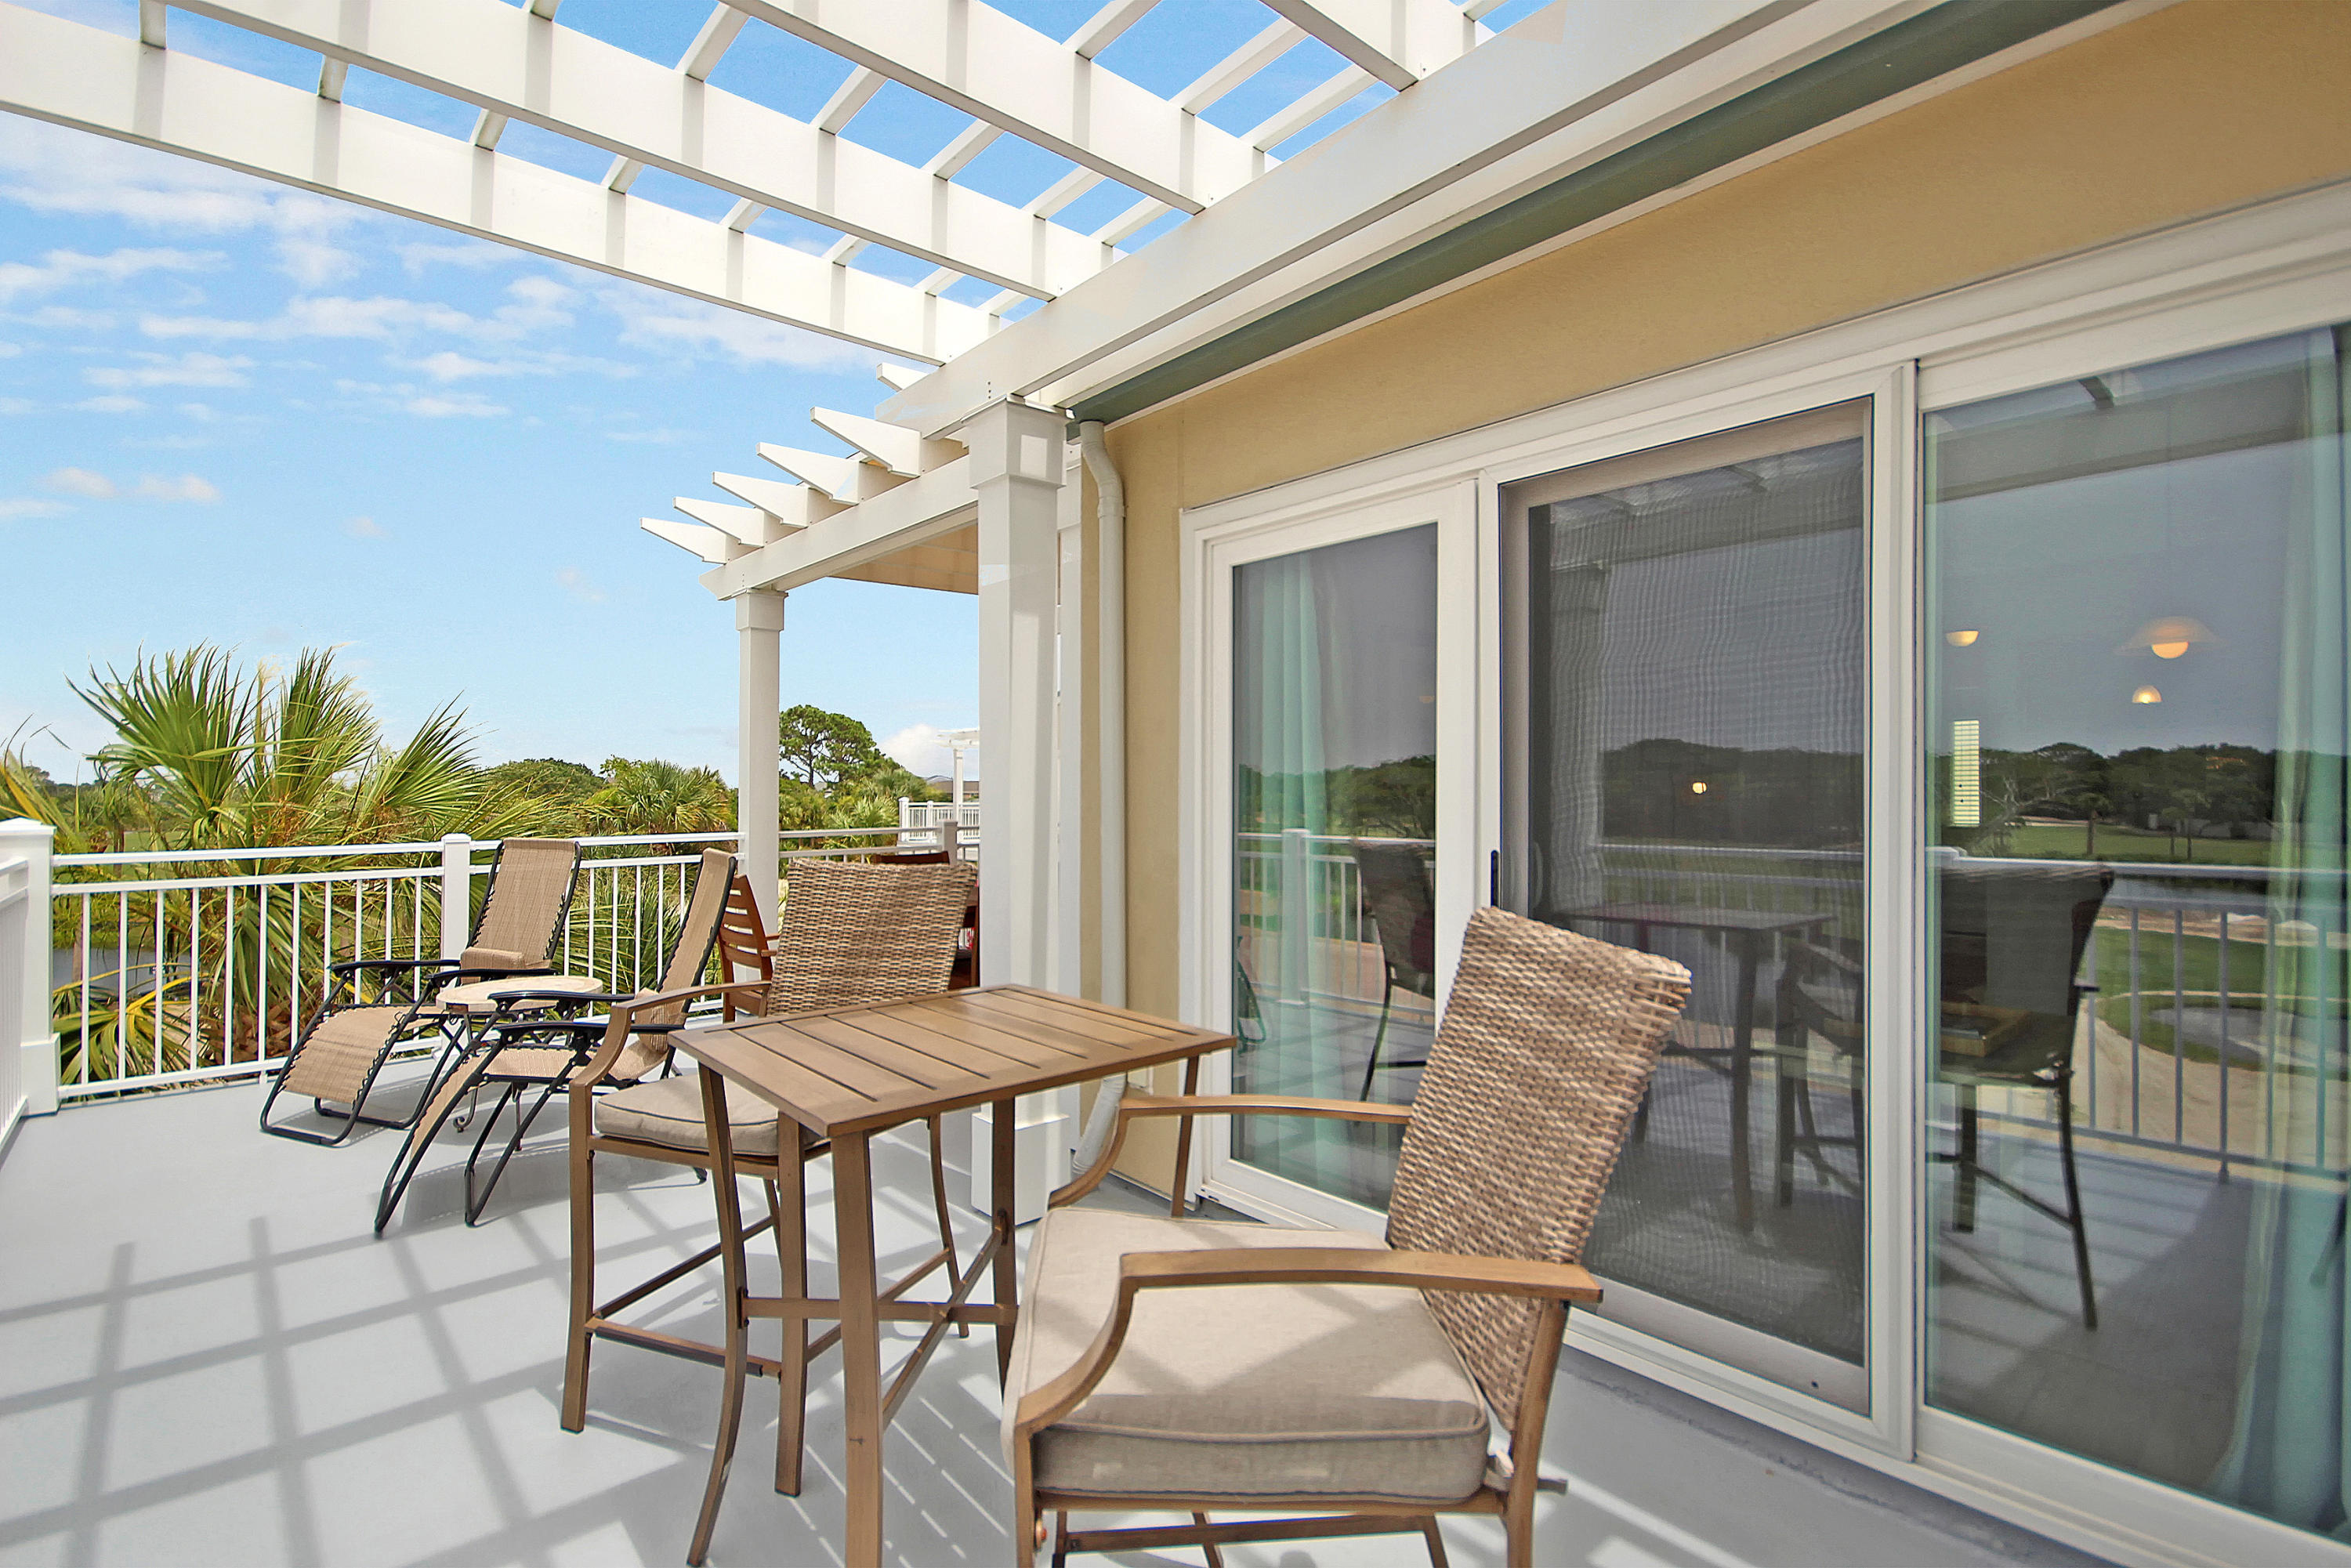 Atrium Villas Homes For Sale - 2912 Atrium Villa, Seabrook Island, SC - 18